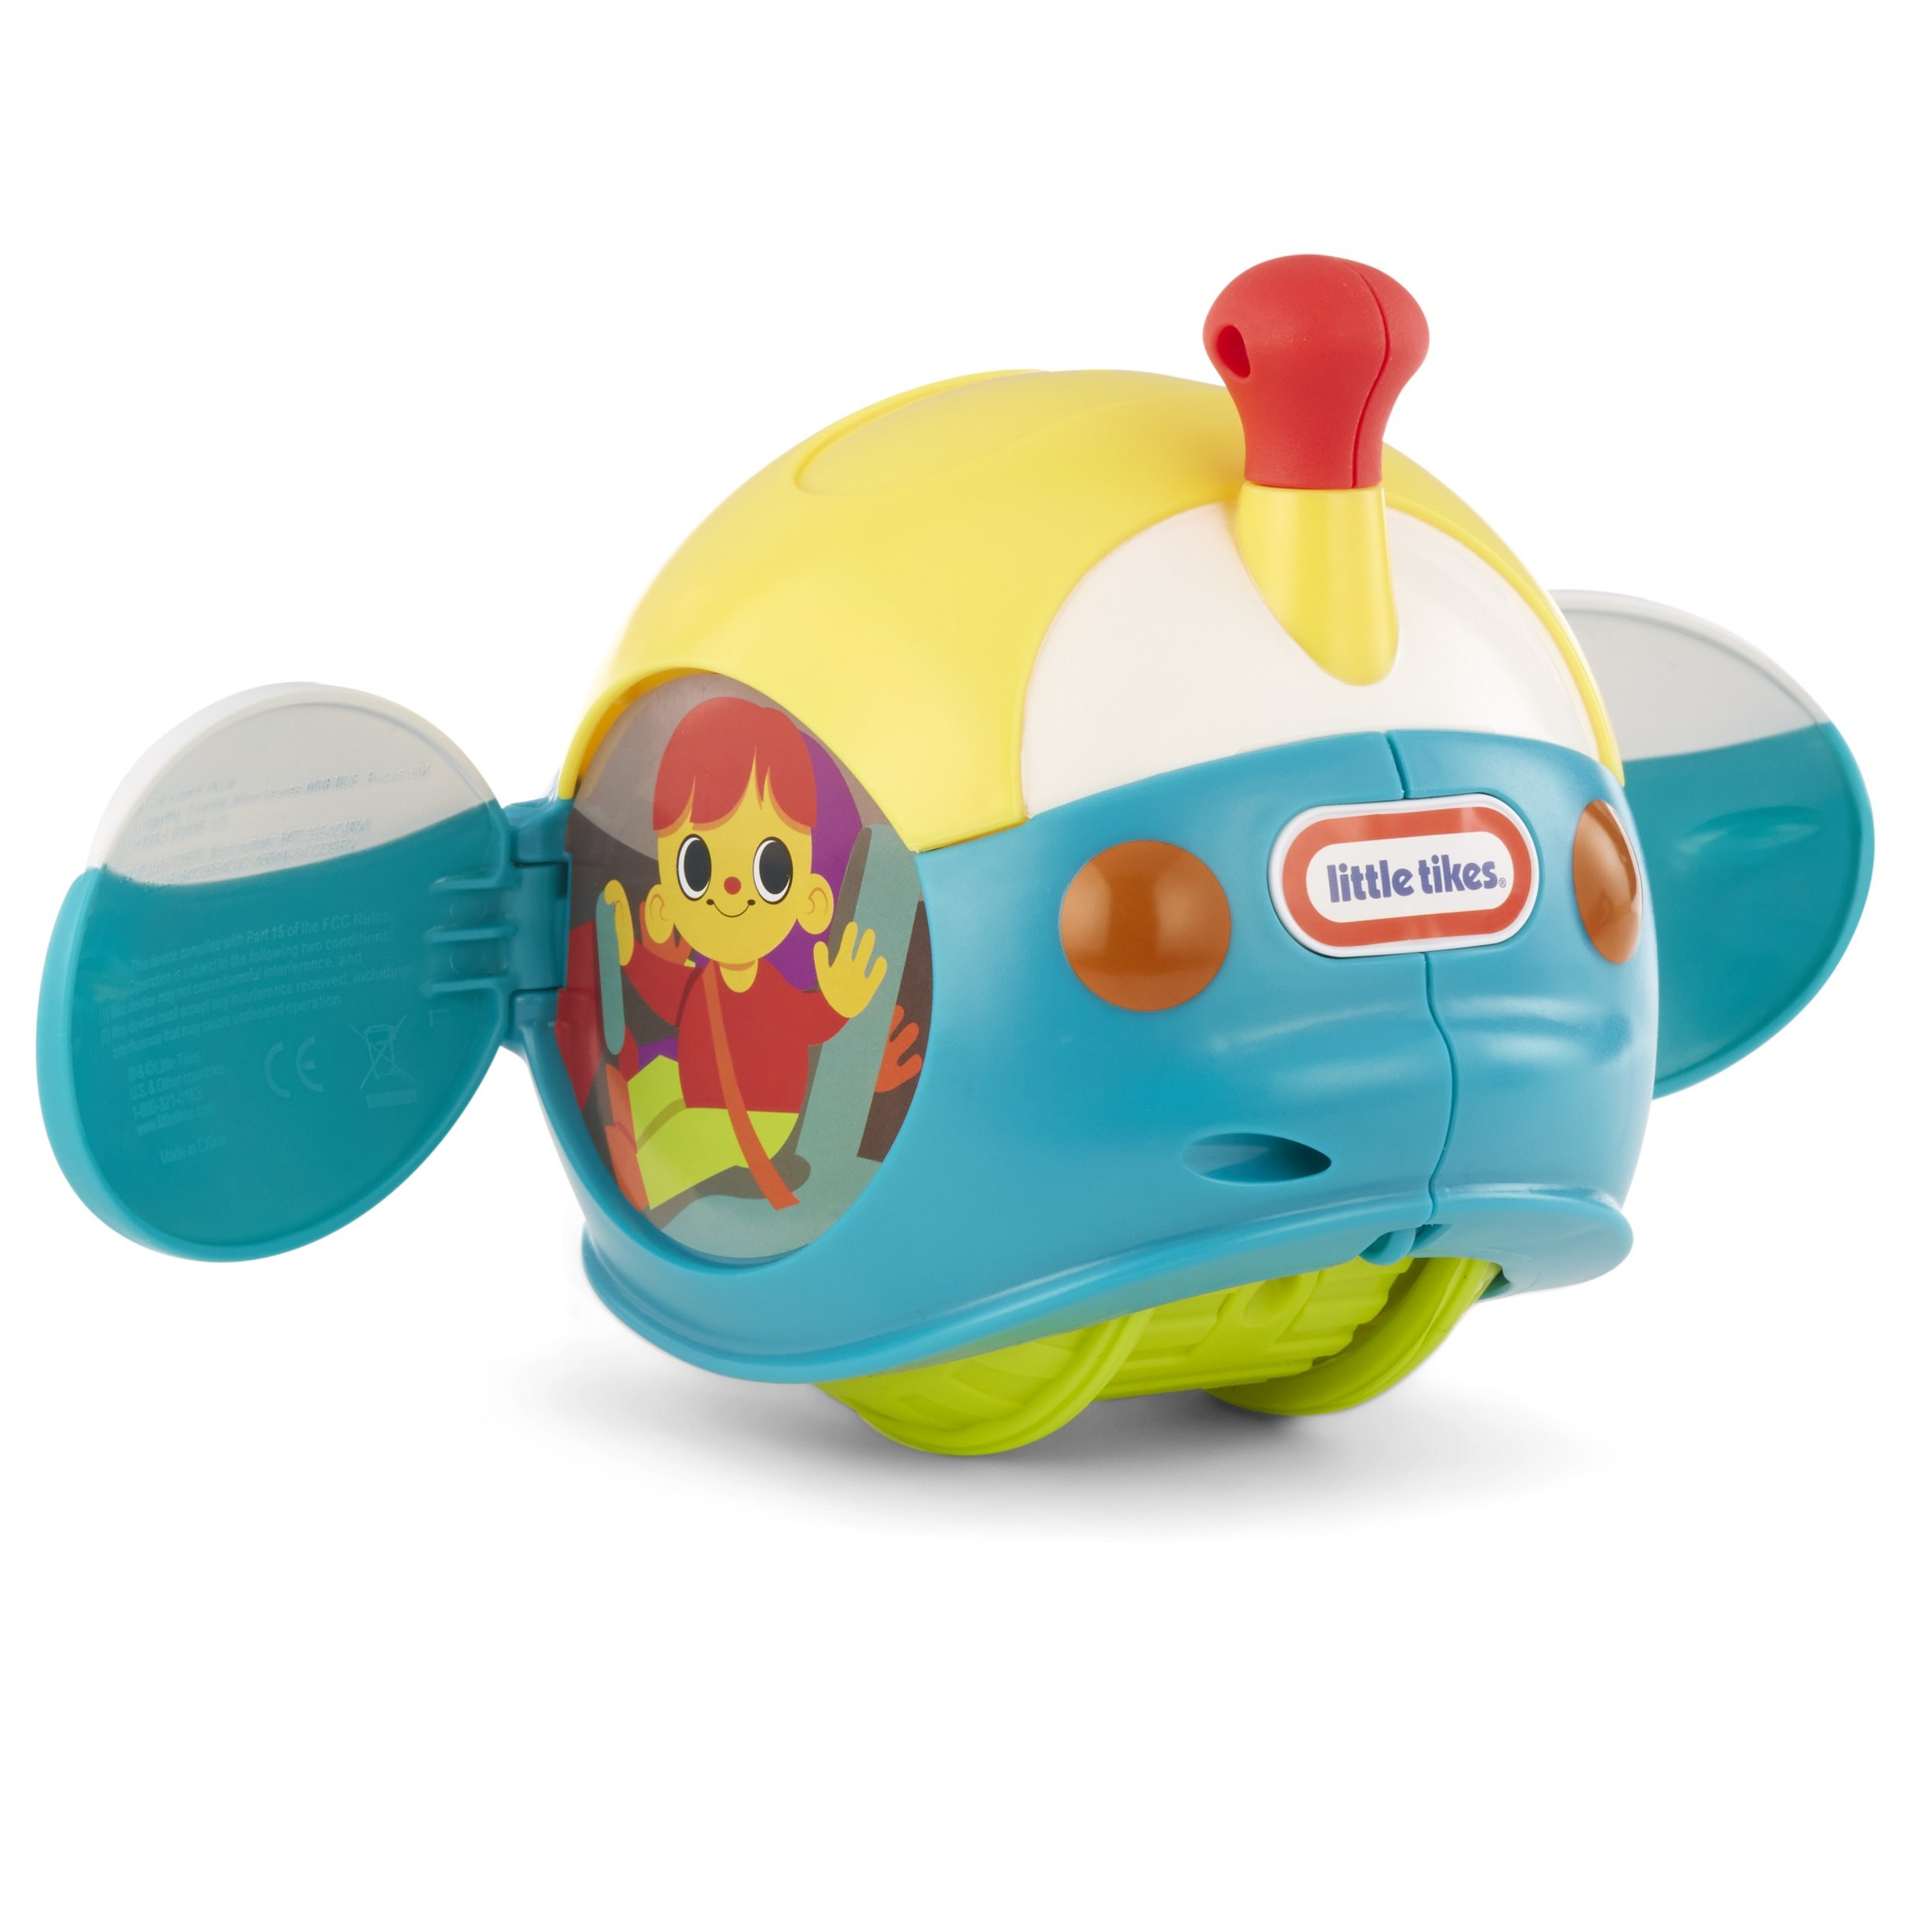 Little Tikes Spinning RC - Blue by Little Tikes (Image #2)